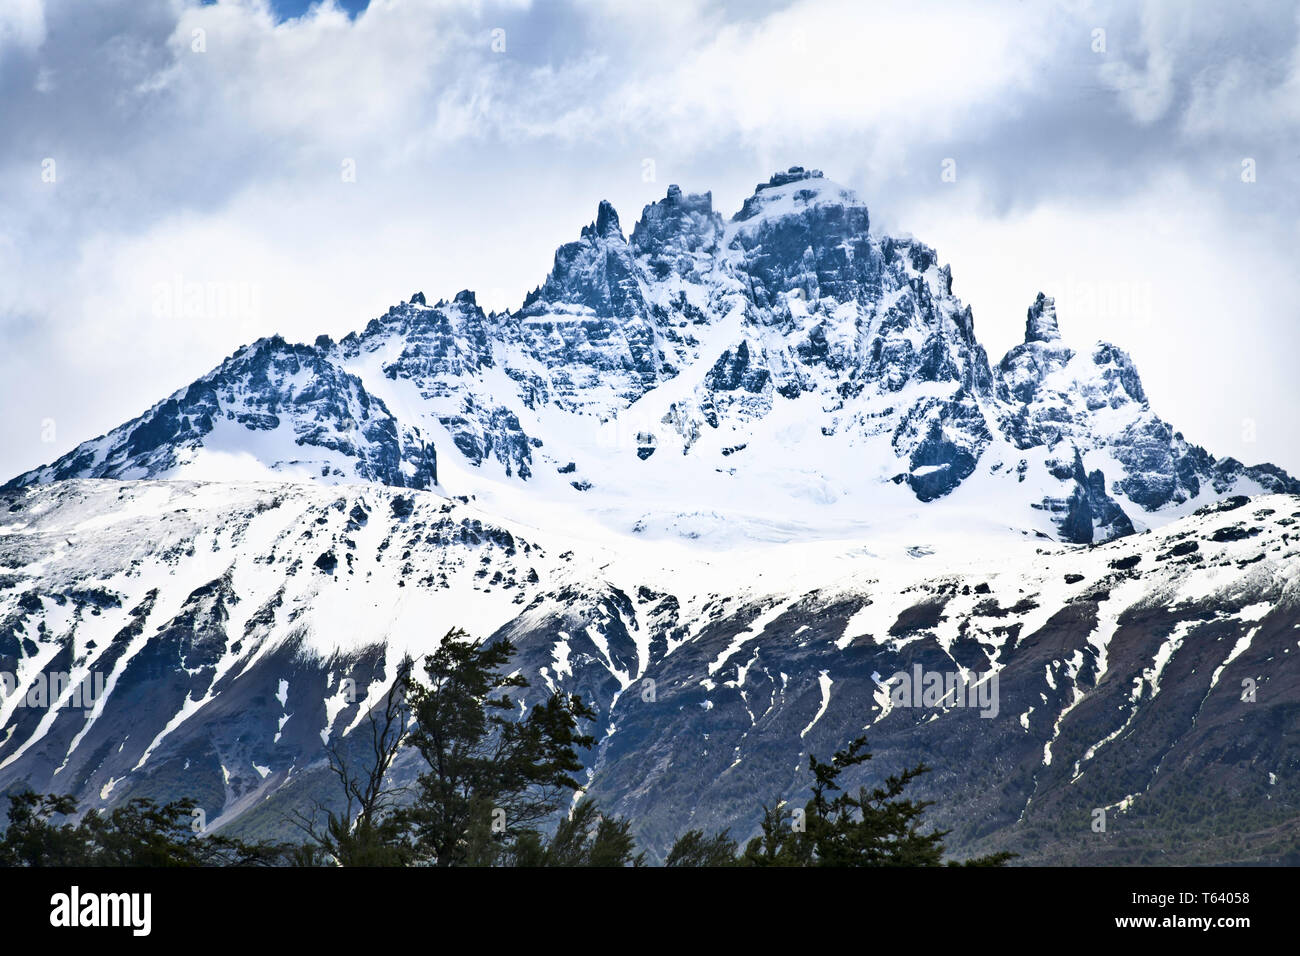 The rugged mountainous ridge of Cerro castillo ,Aysen,Chile. - Stock Image